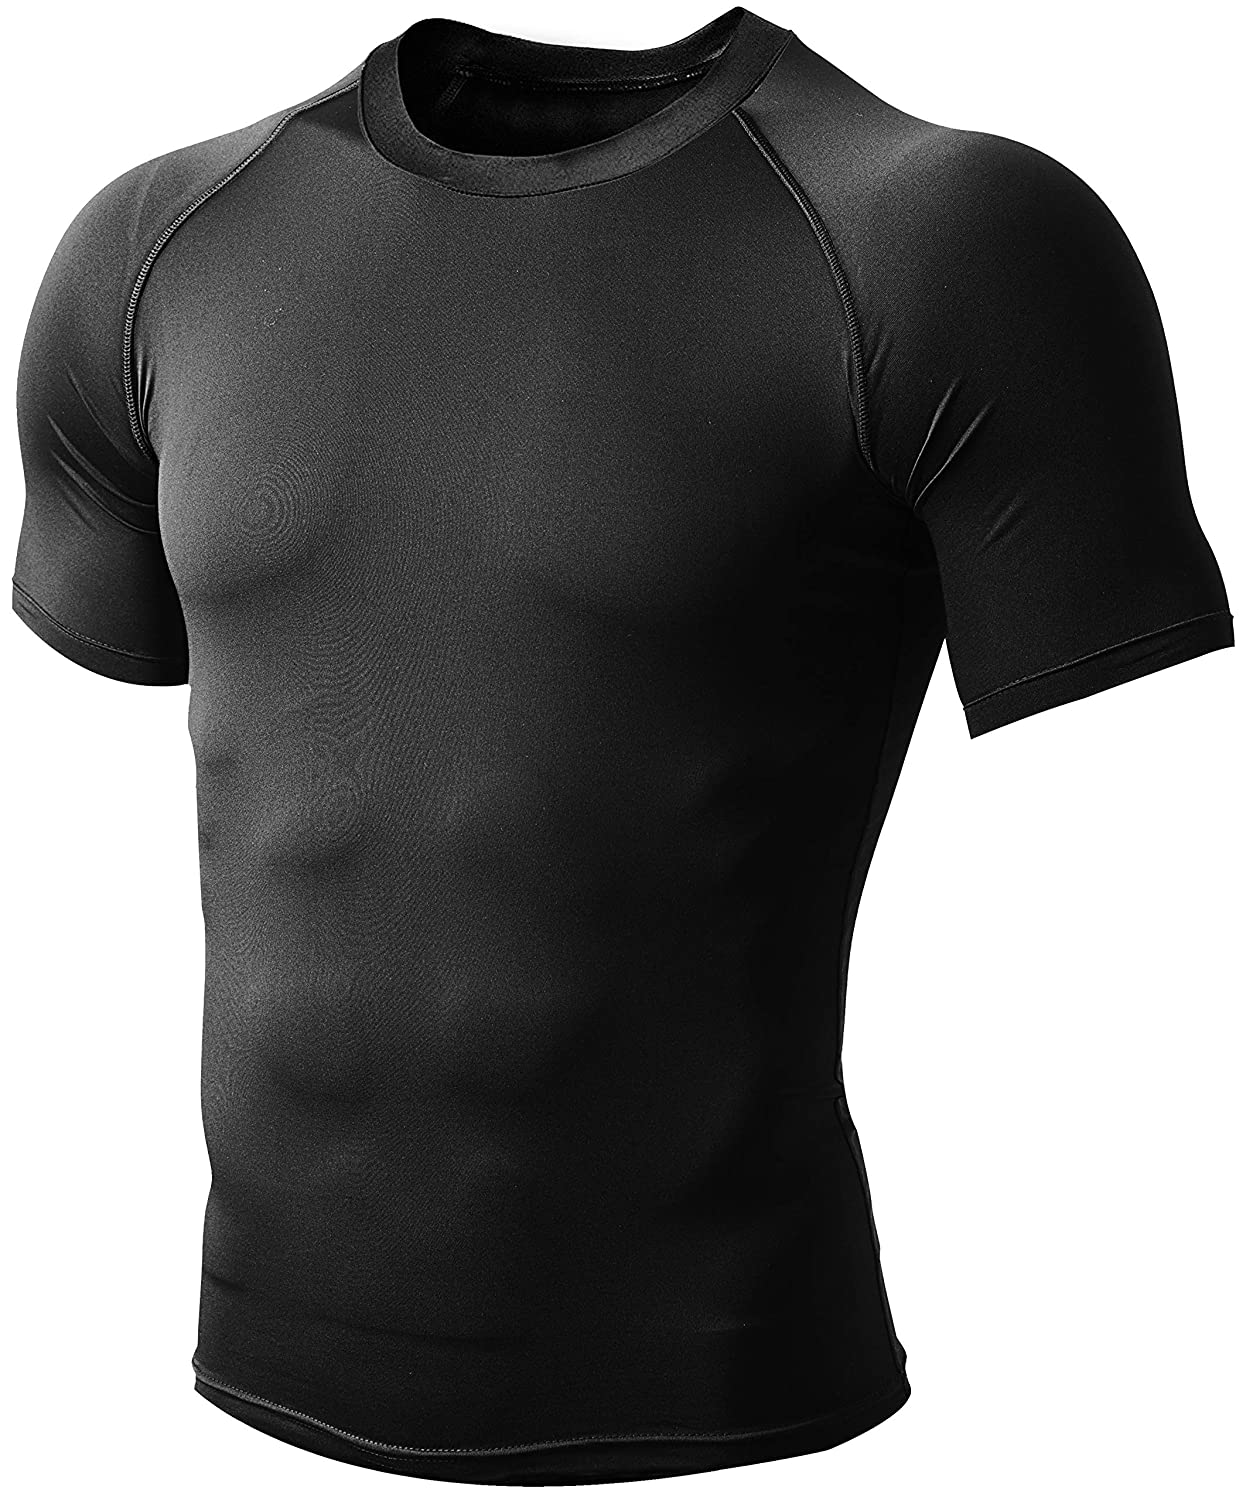 Defender Mens Cool Dry Compression Baselayer Quick Dry Running Shirt